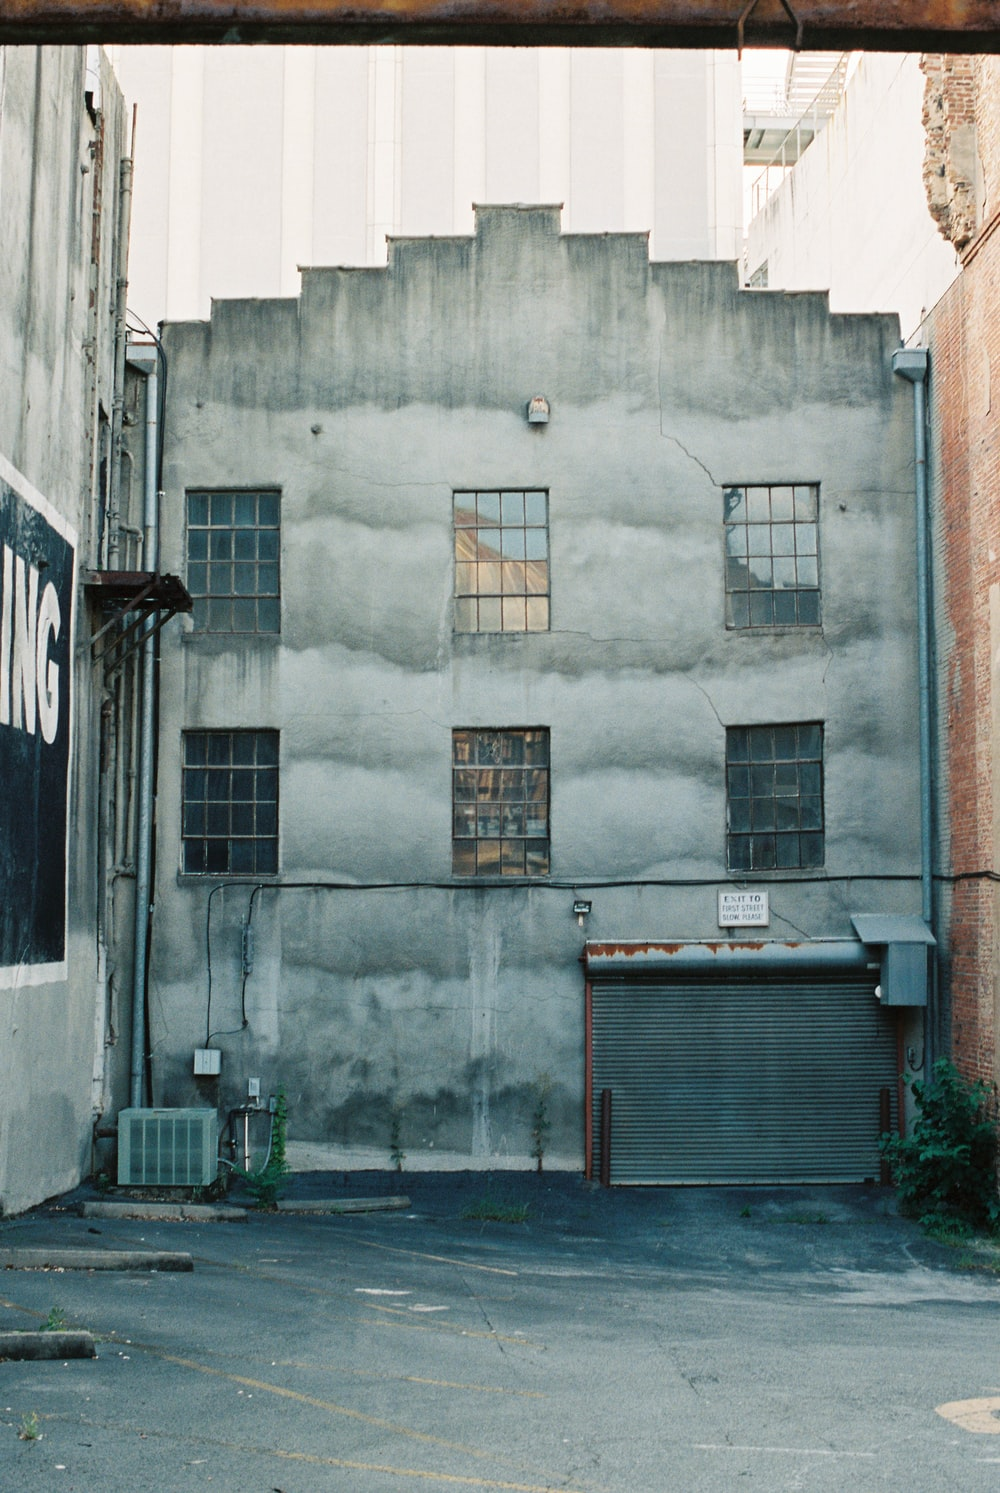 gray concrete building with brown wooden window